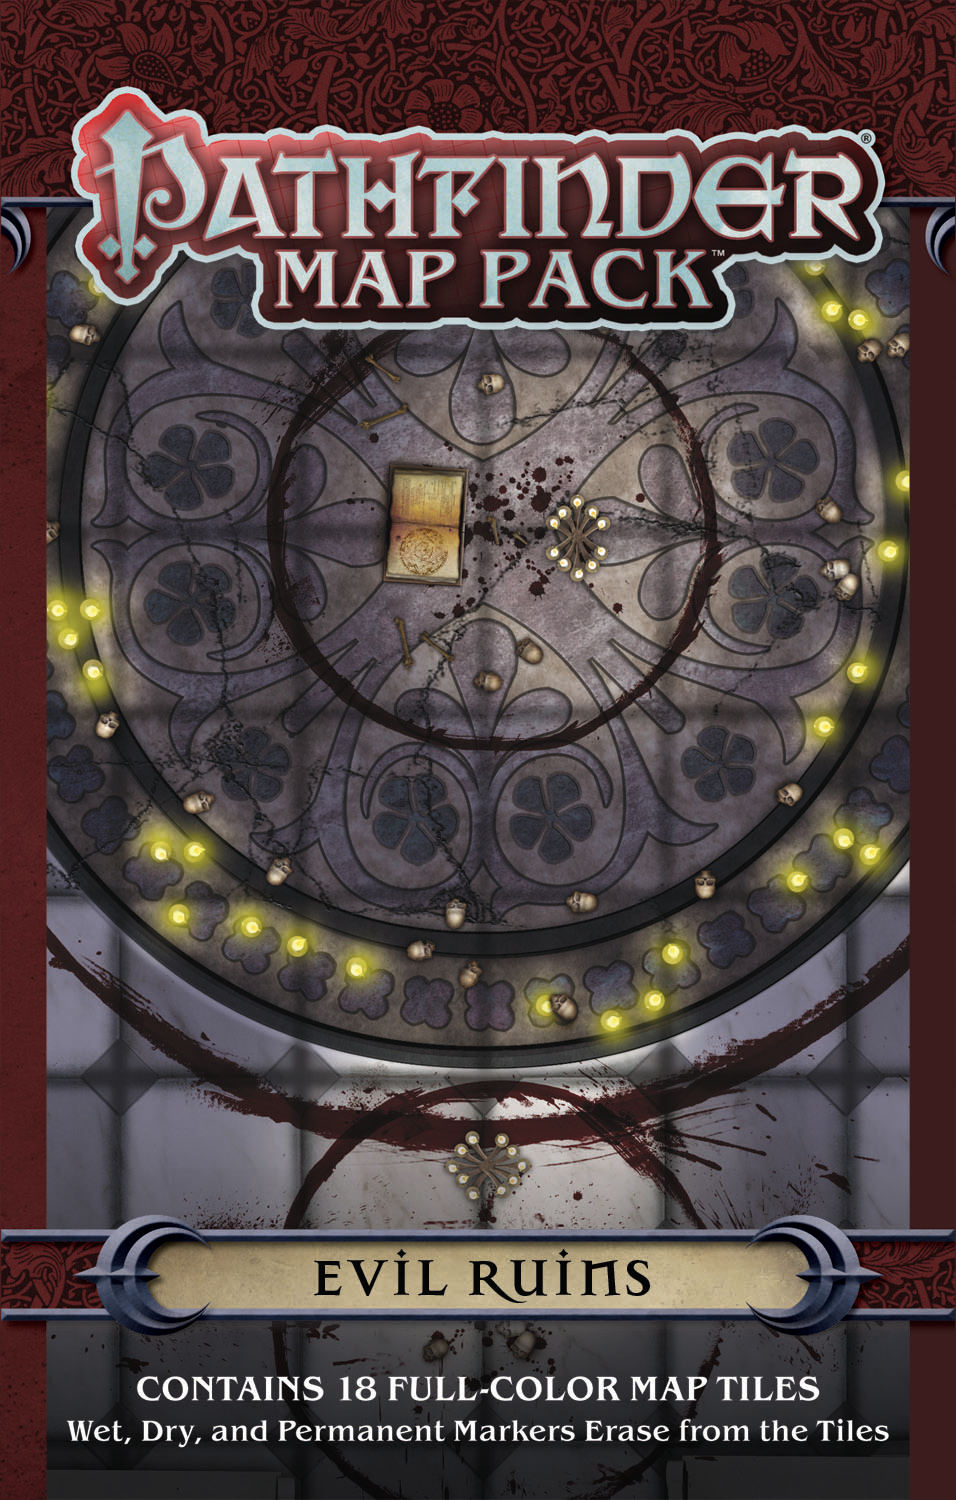 PATHFINDER MAP PACK EVIL RUINS